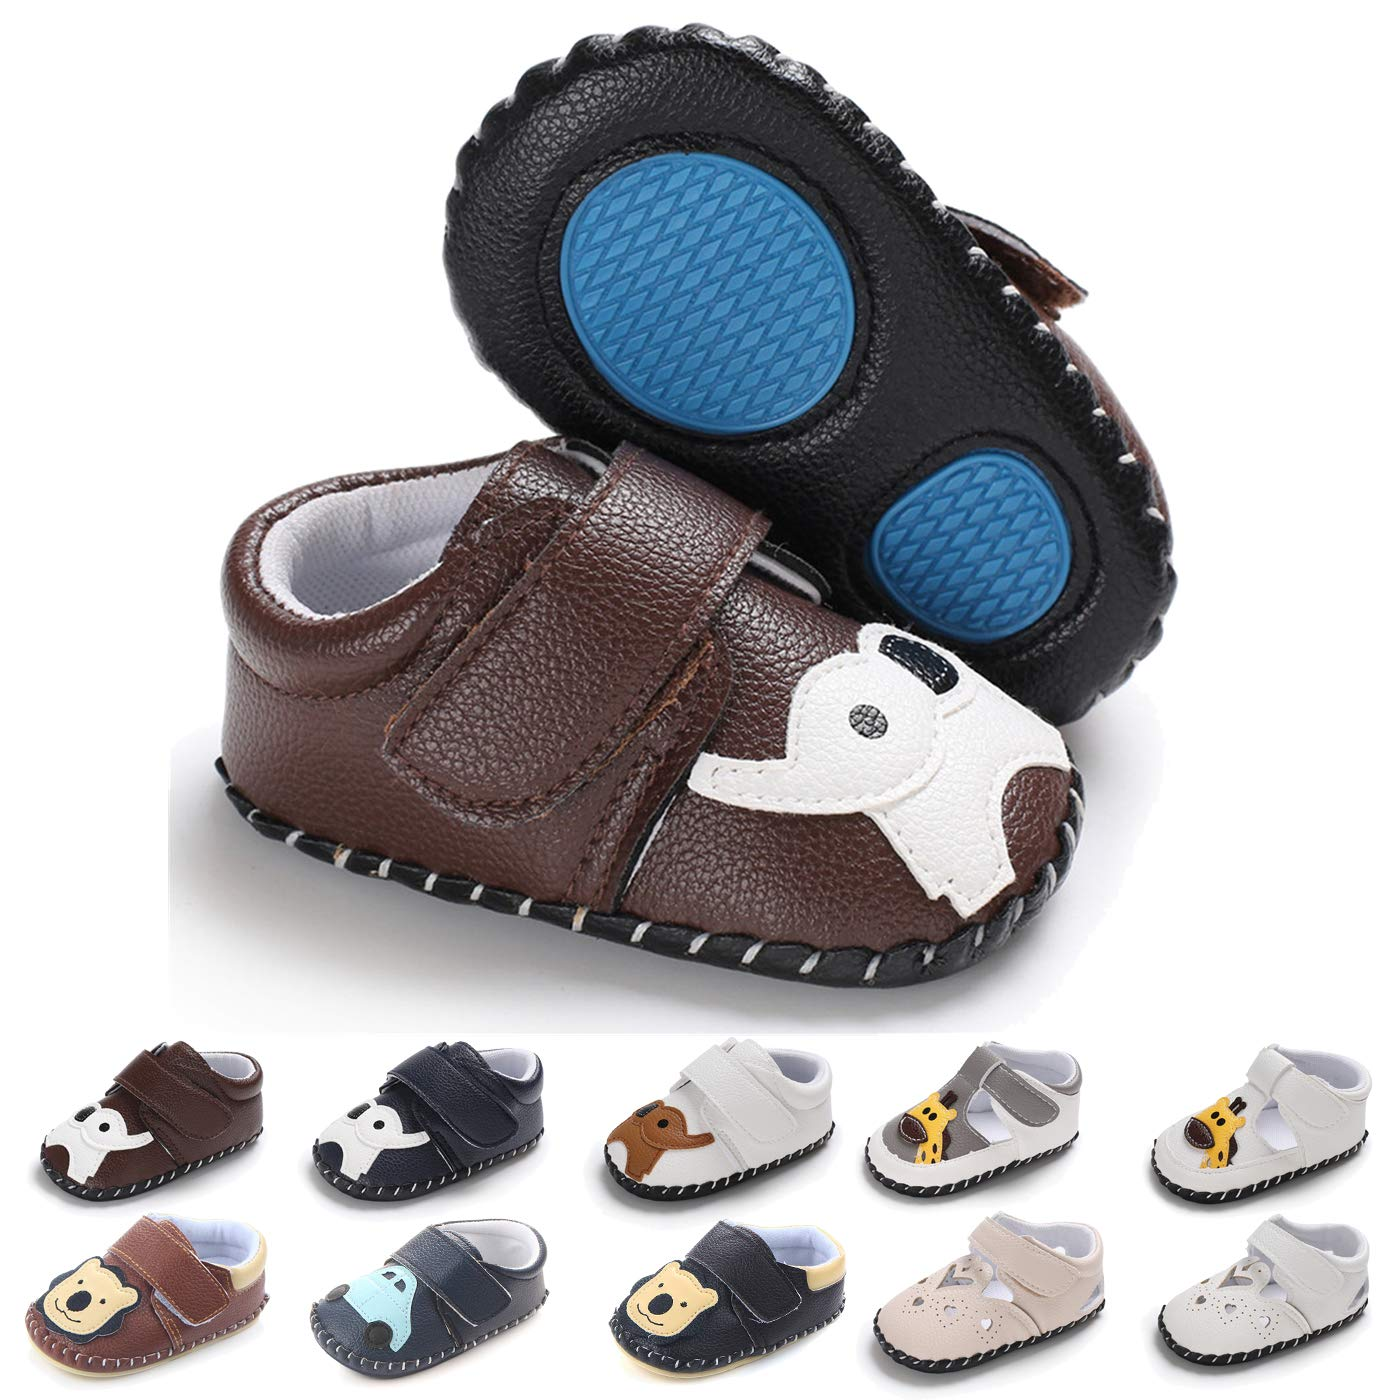 125d1680ff6f2 BEBARFER Baby Boys Girls Shoes Cartoon Crawling Slippers Soft Moccasins  Toddler Infant Crib Pre-Walkers First Walkers Shoes Sneakers